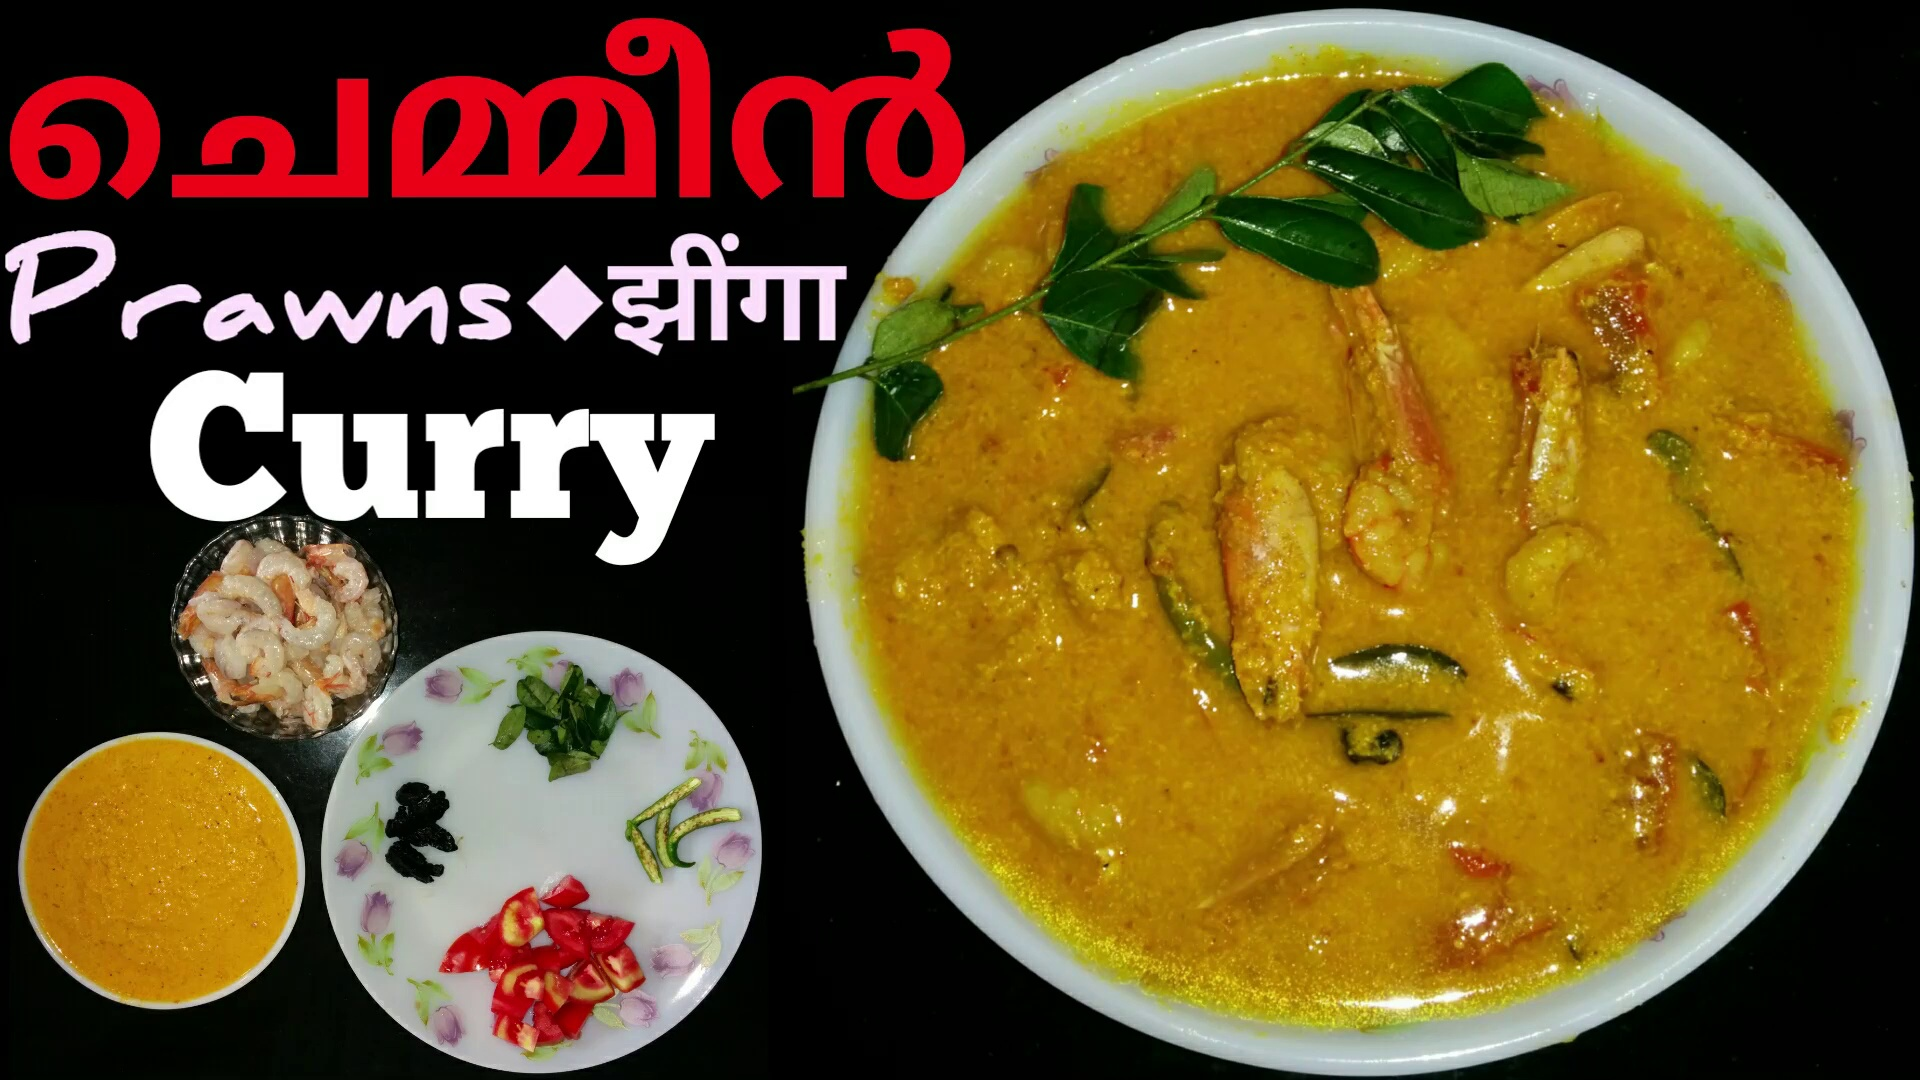 Oil Free Easy And Tasty Kerala Style Prawns Coconut Curry | Thenga Aracha Chemmeen Curry| ऐसे बनाएं नारियल वाली झींगा करी | രുചികരമായ ചെമ്മീൻ കറി